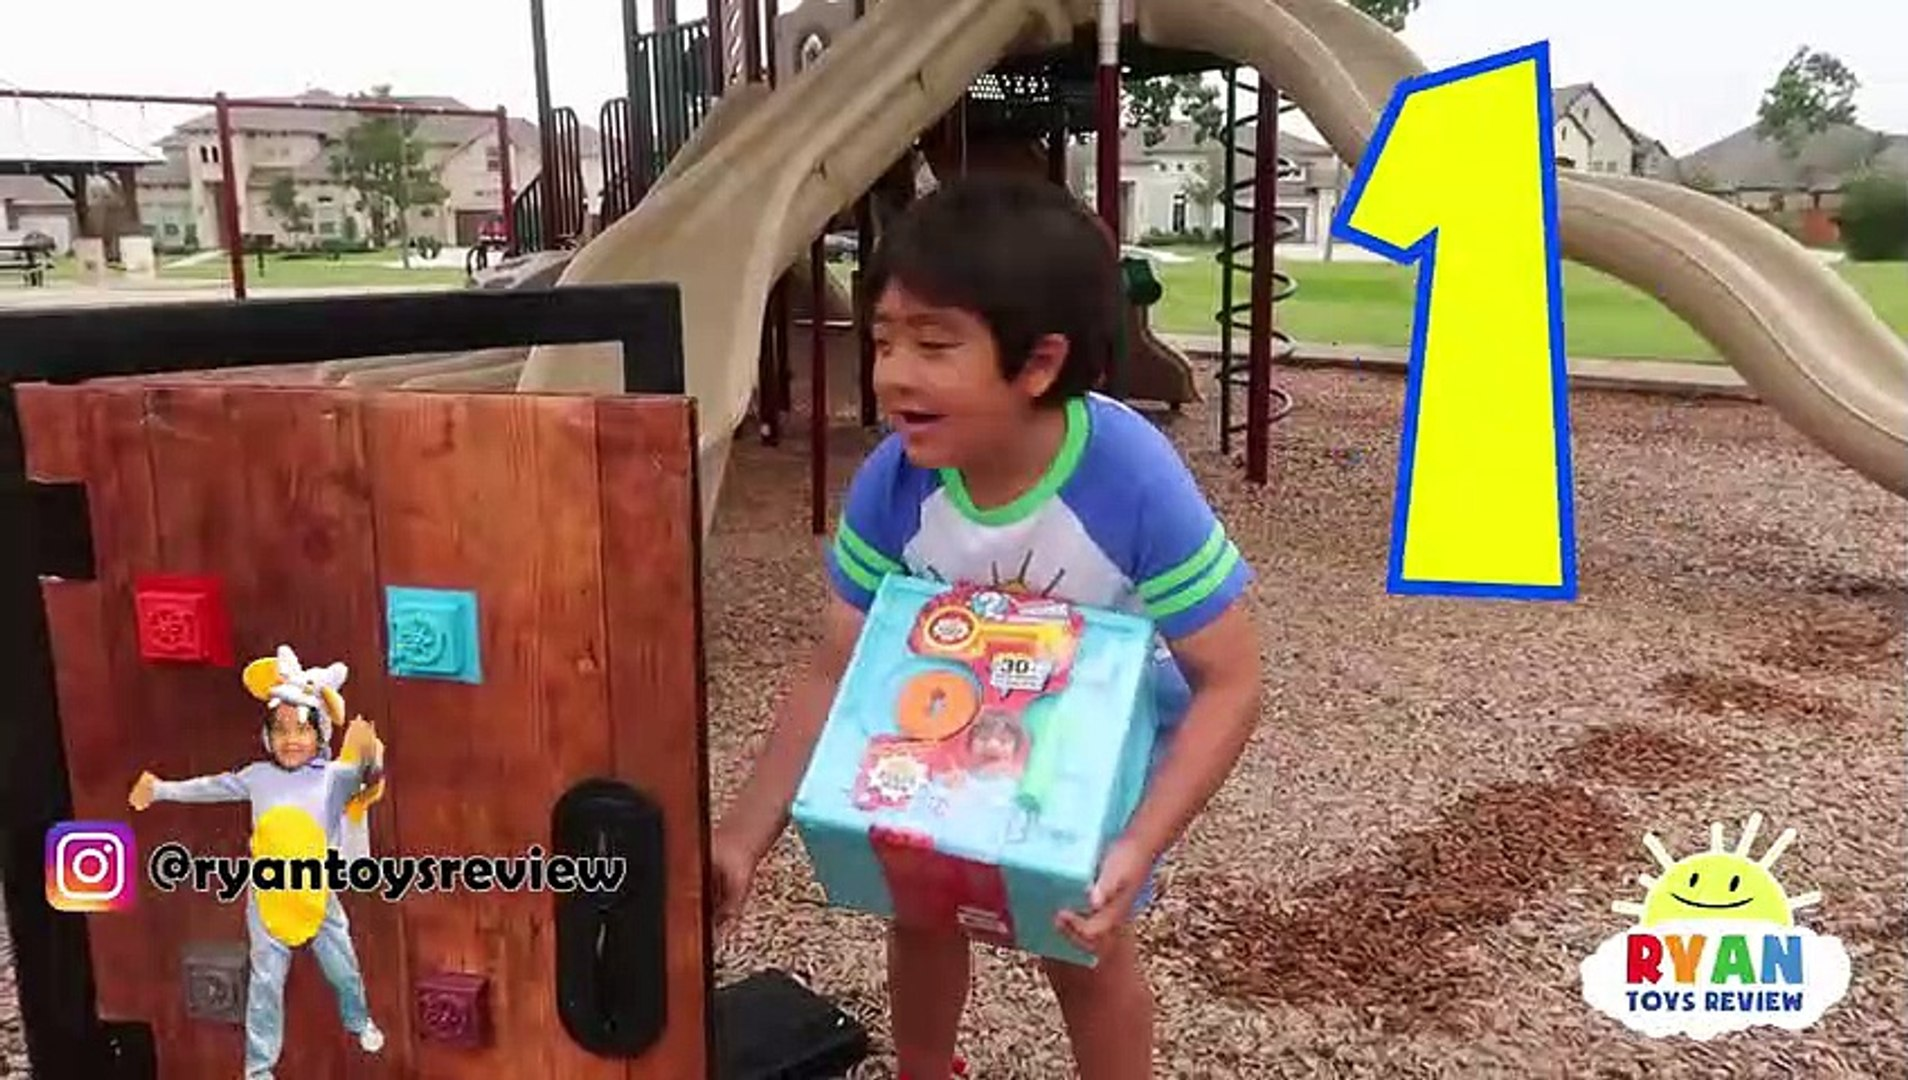 Ryan Toysreview Roblox Jailbreak - Ryan Found A Secret Door From His Room To The Playground